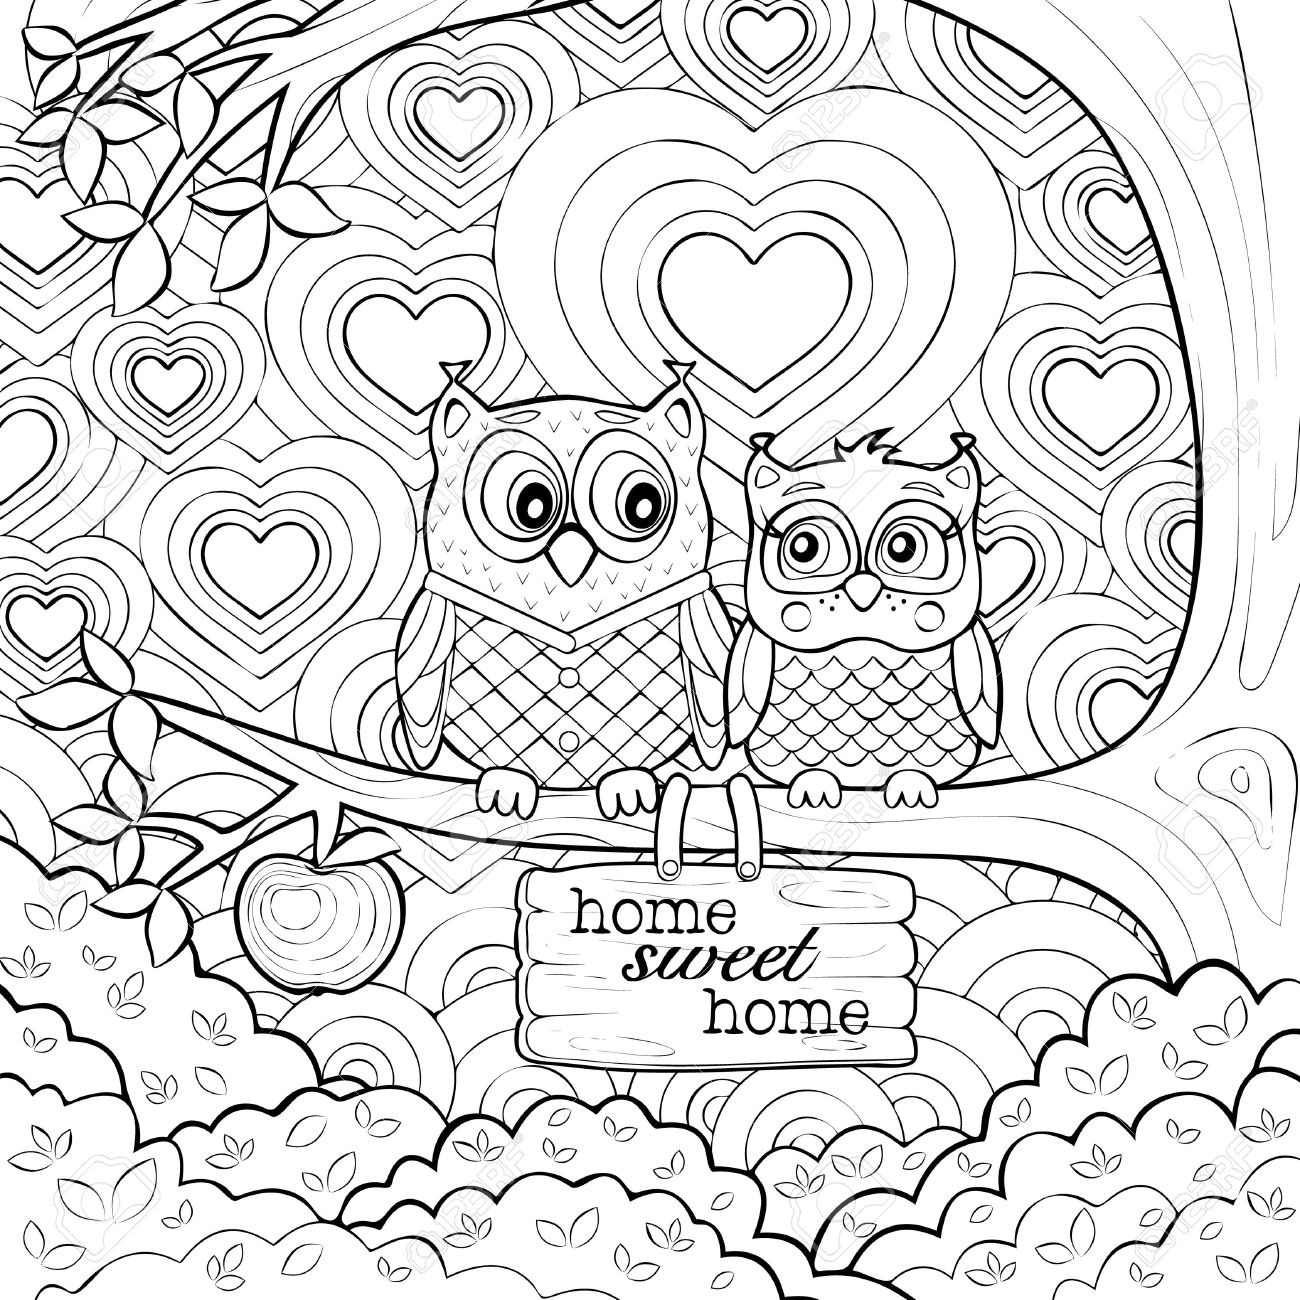 Cute Owls - Art Therapy Adult Coloring Page Royalty Free Cliparts ...